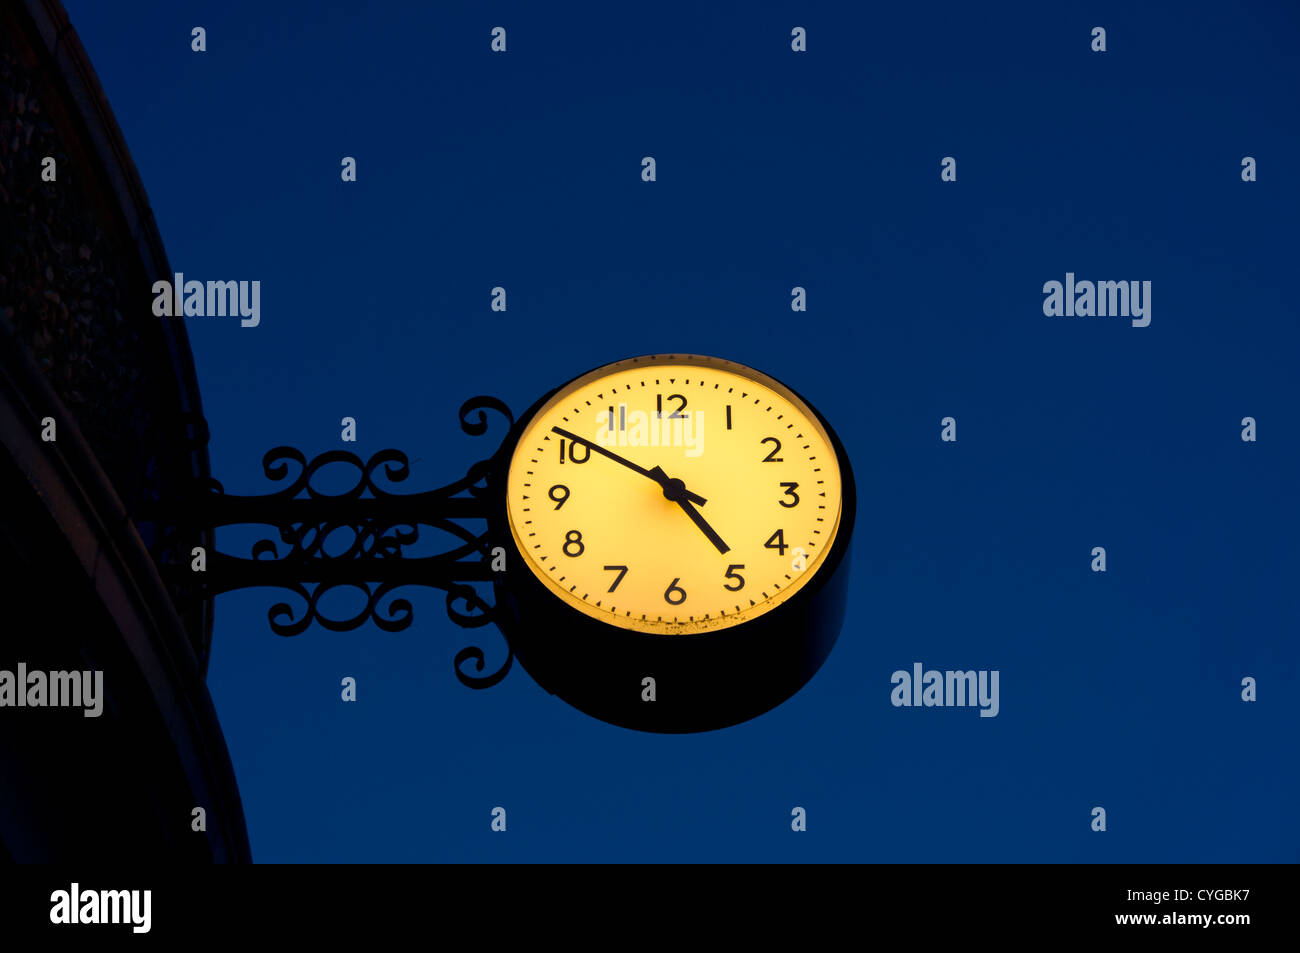 An ornate clock with an illuminated face on the side of a building in the night sky - Stock Image